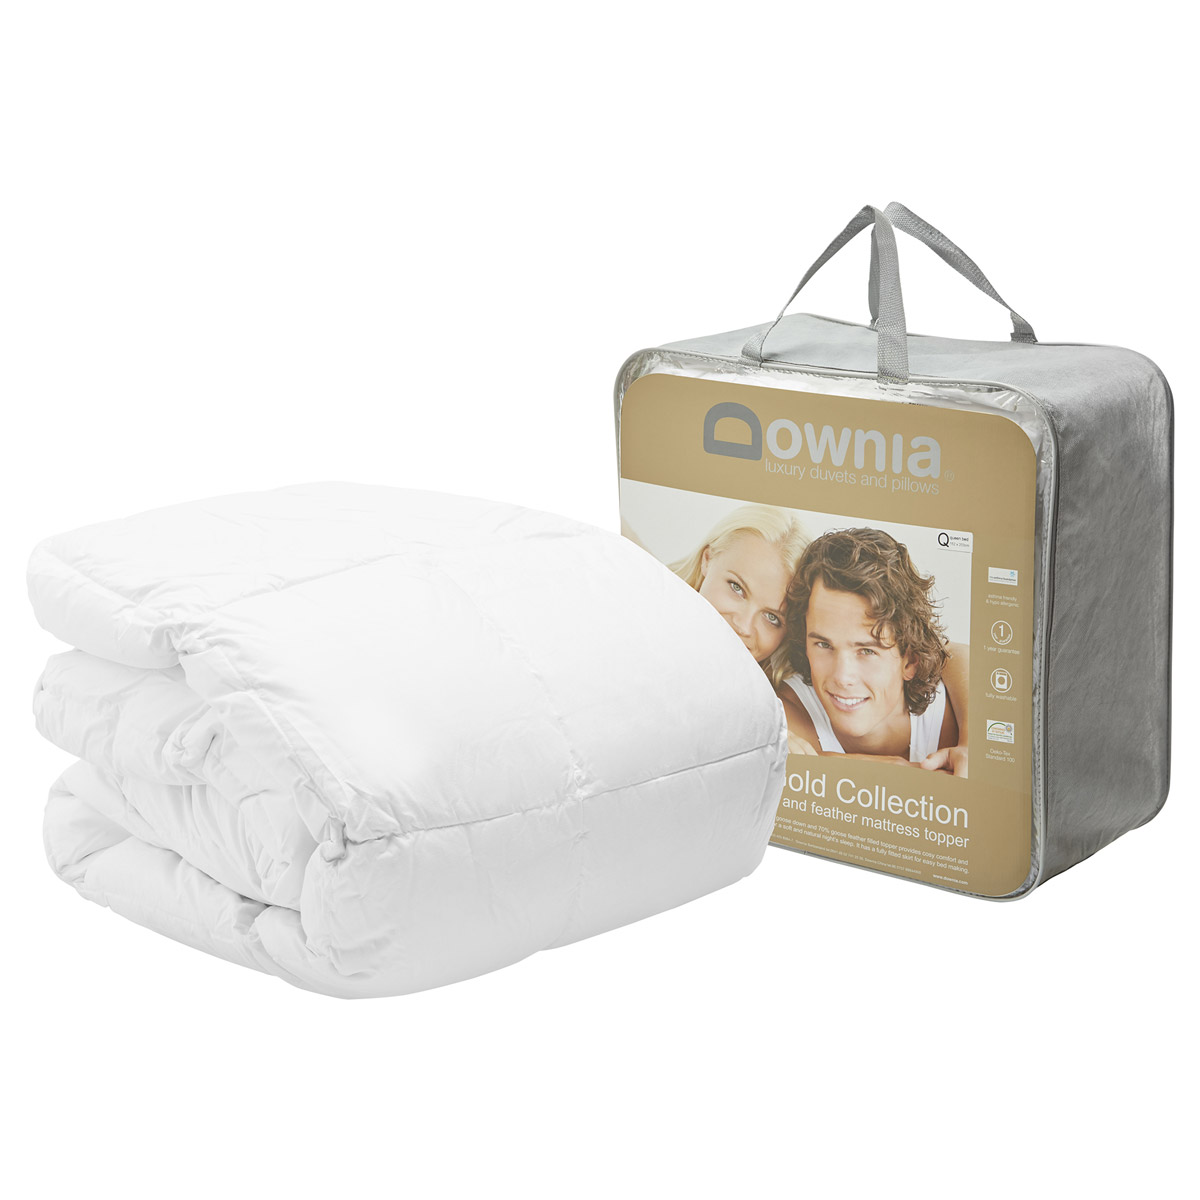 Downia Gold Collection Goose Down and Feather Mattress Topper